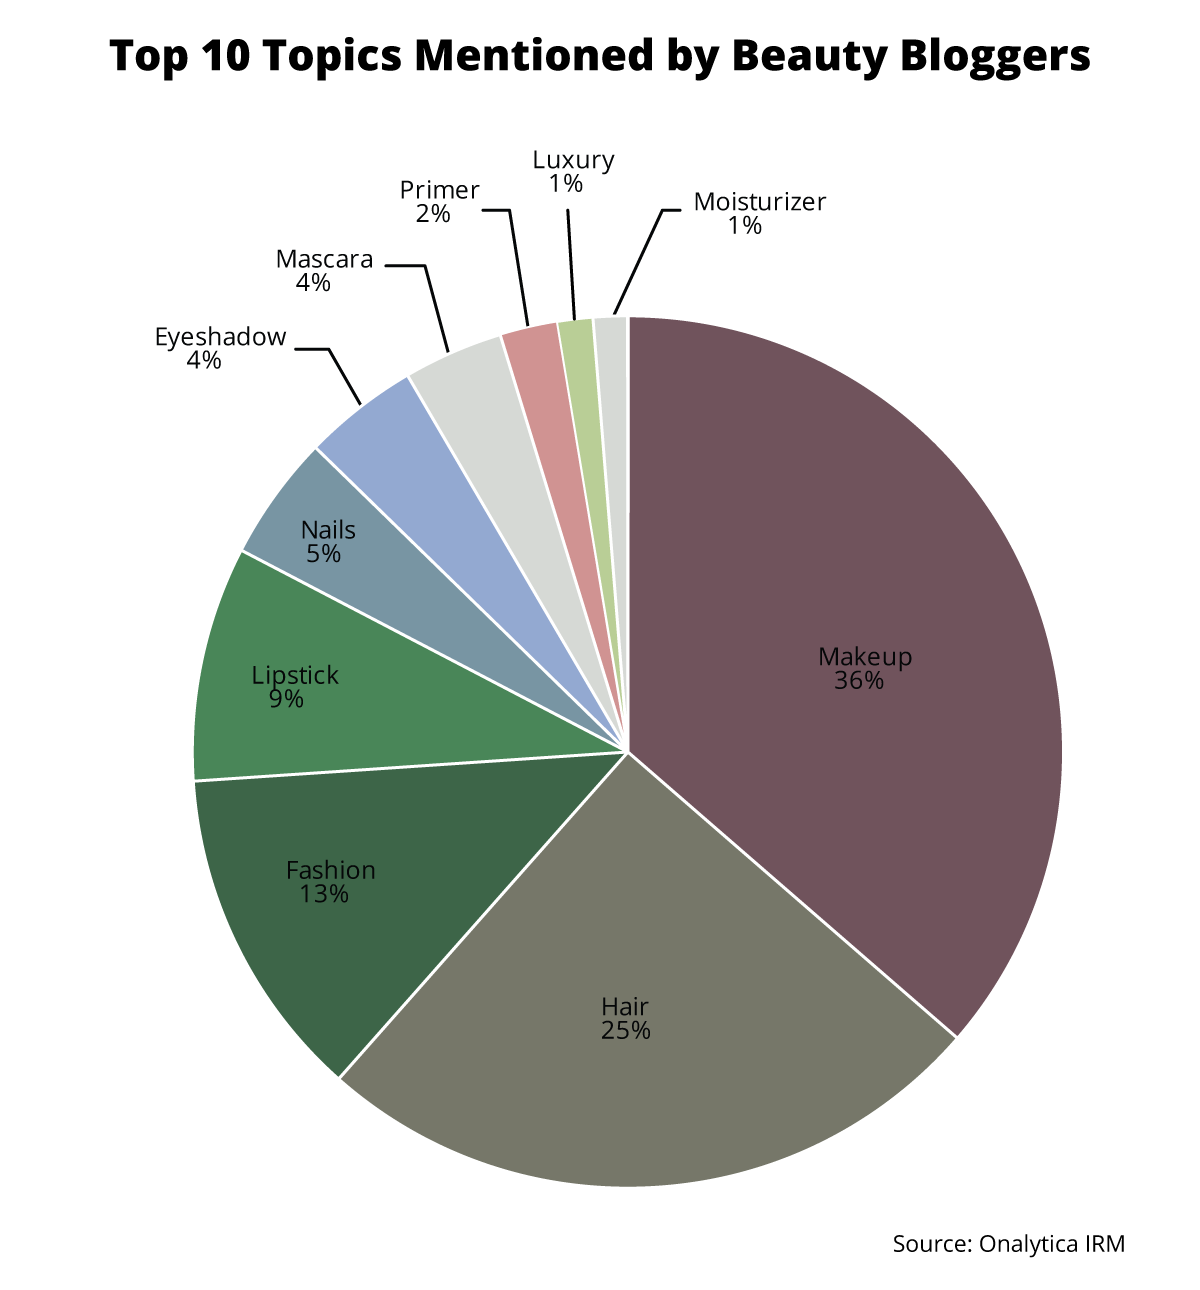 Onalytica - Beauty Bloggers: Top 100 Influencers and Brands - Top 10 Topics